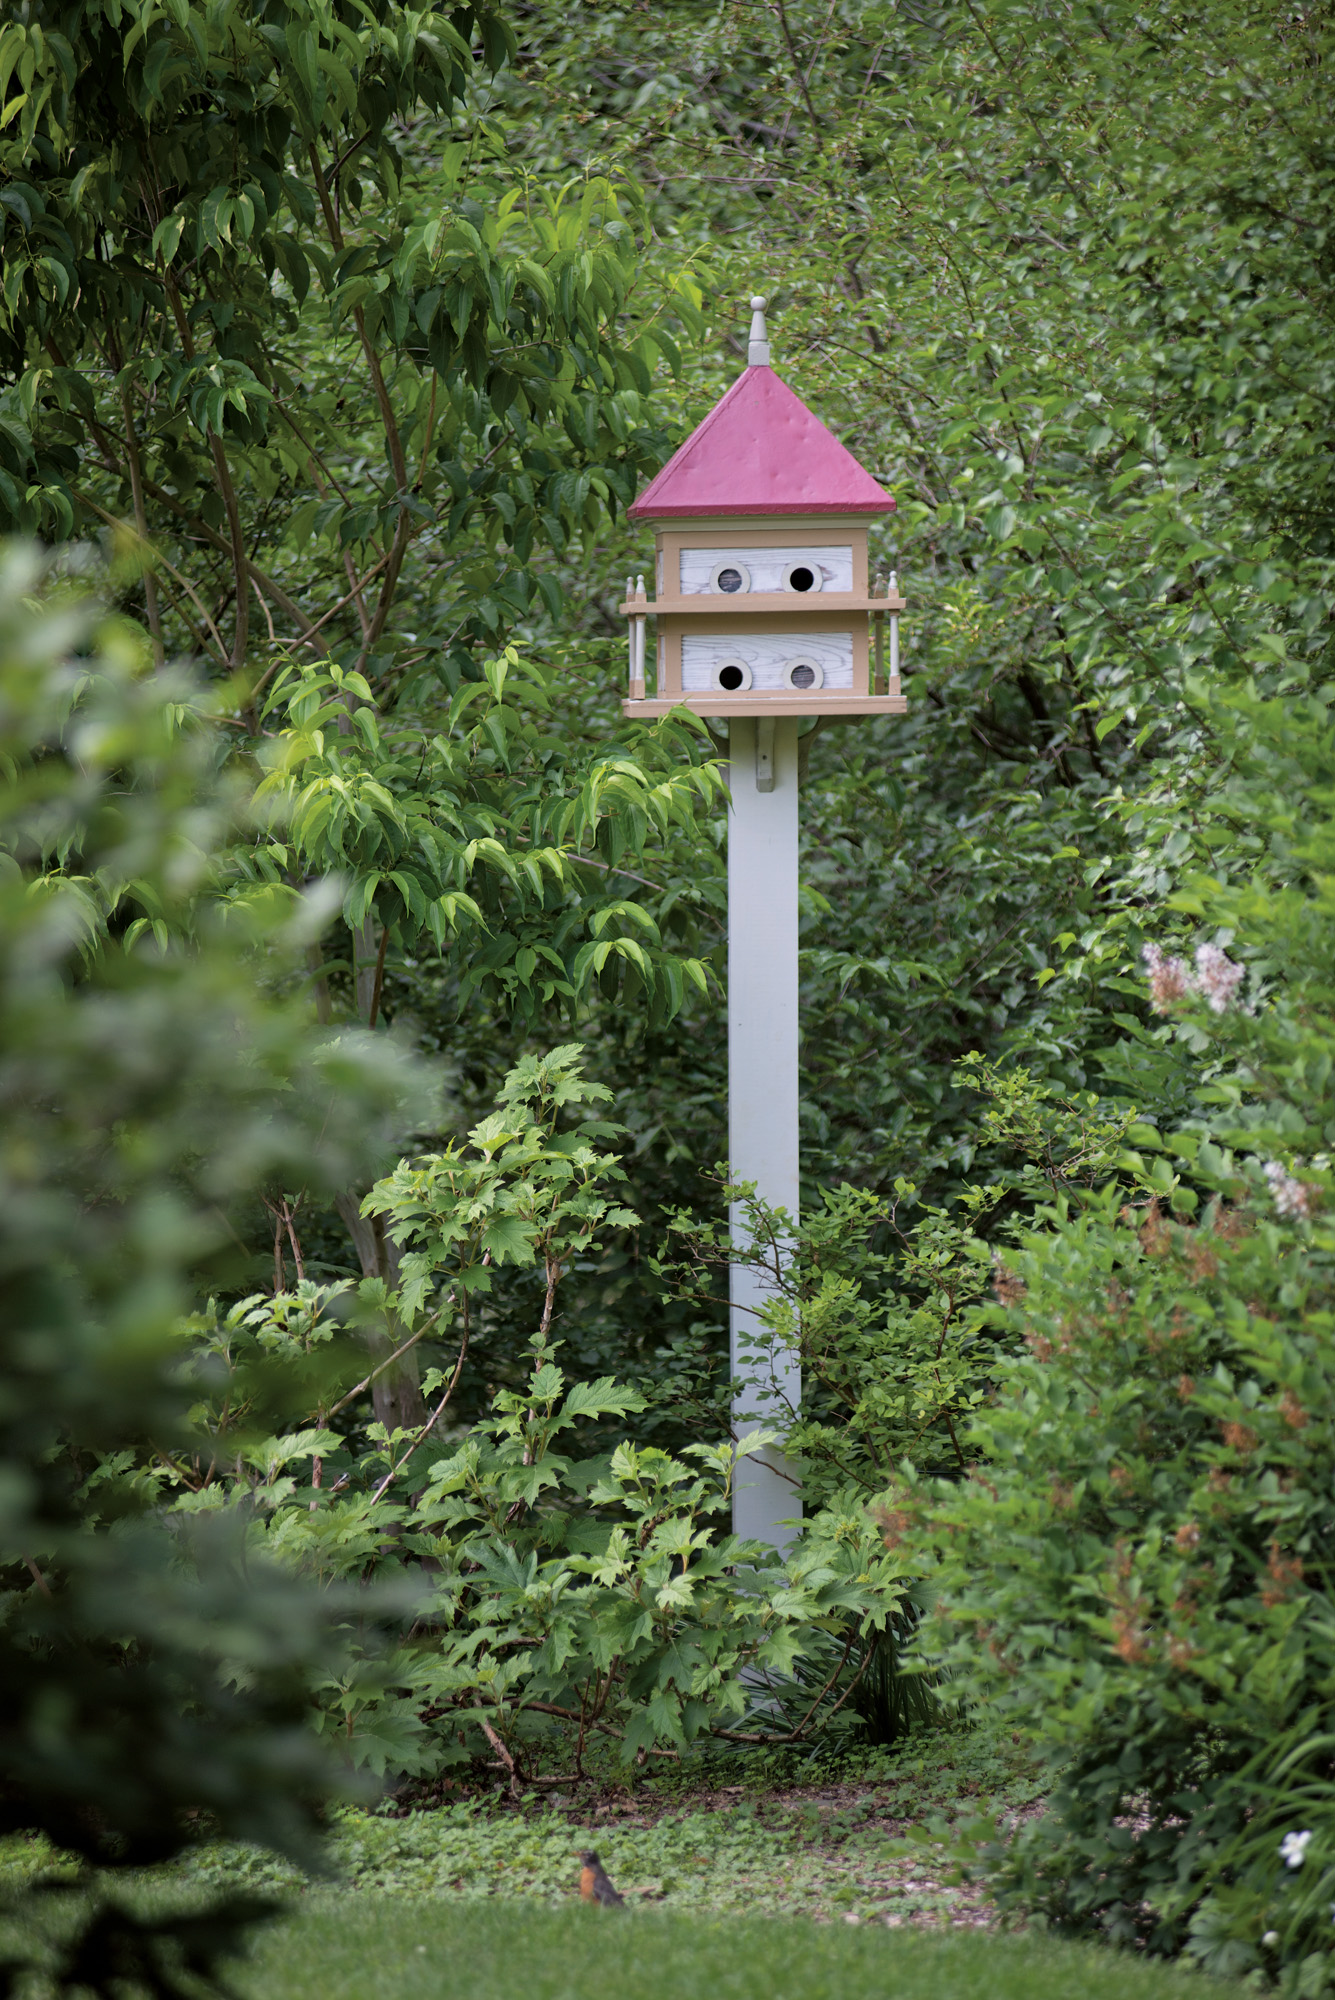 Even the birdhouses are vintage.